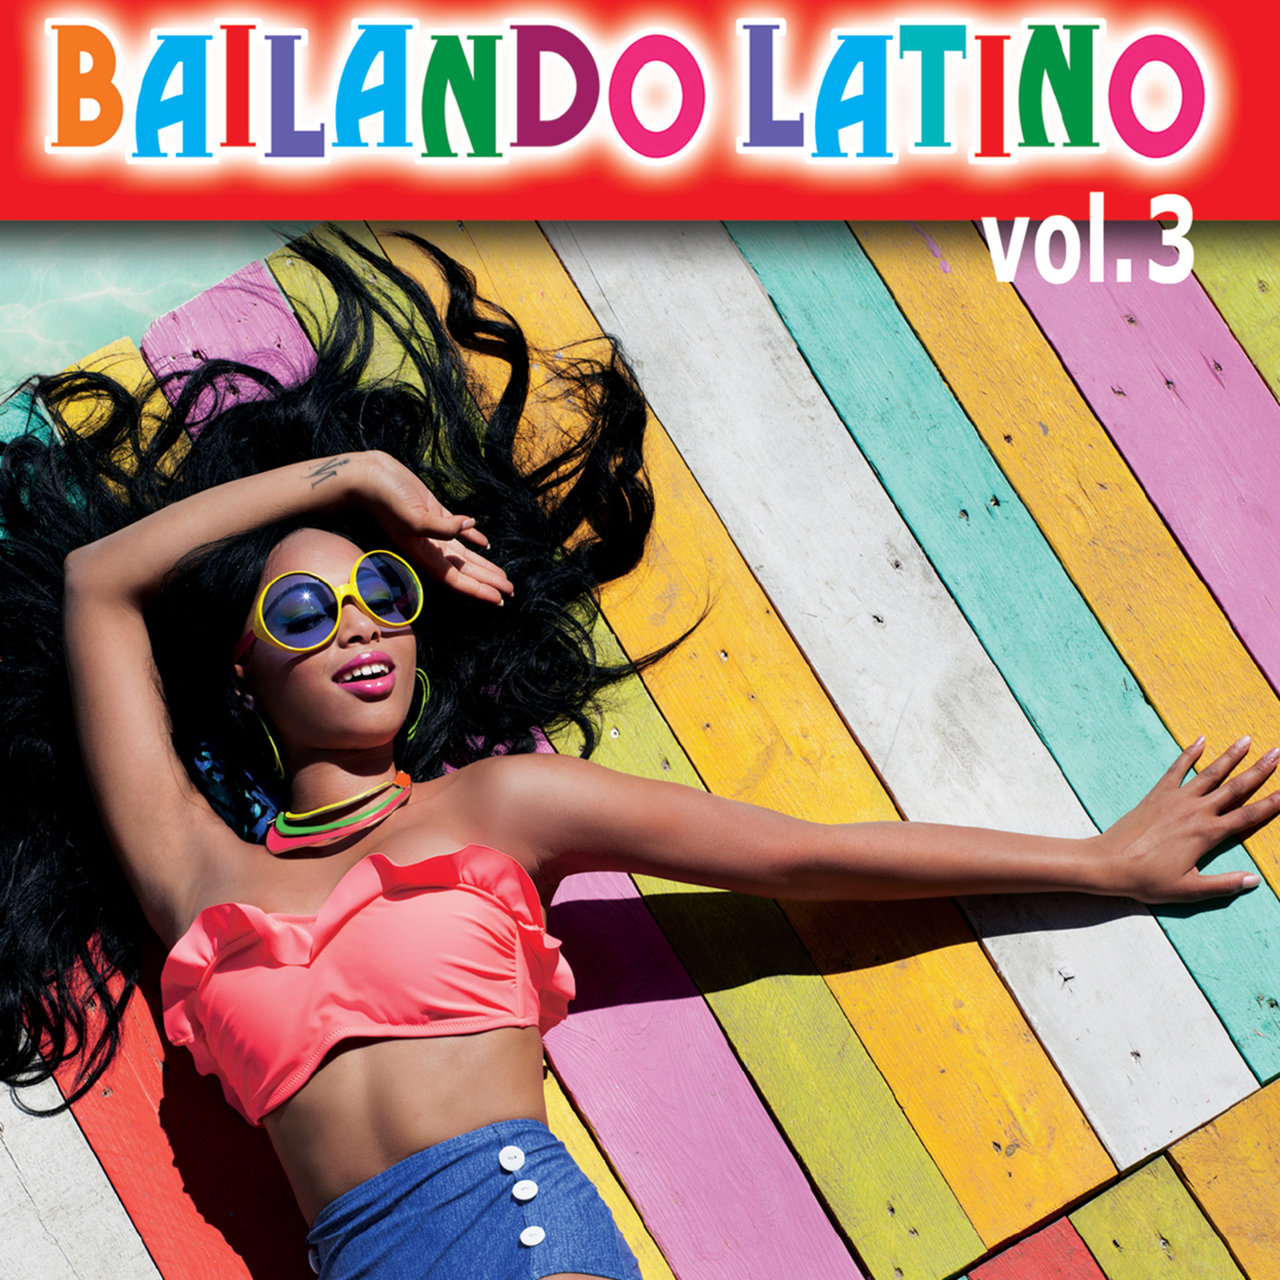 Hitmania Presents: Bailando Latino Vol. 3